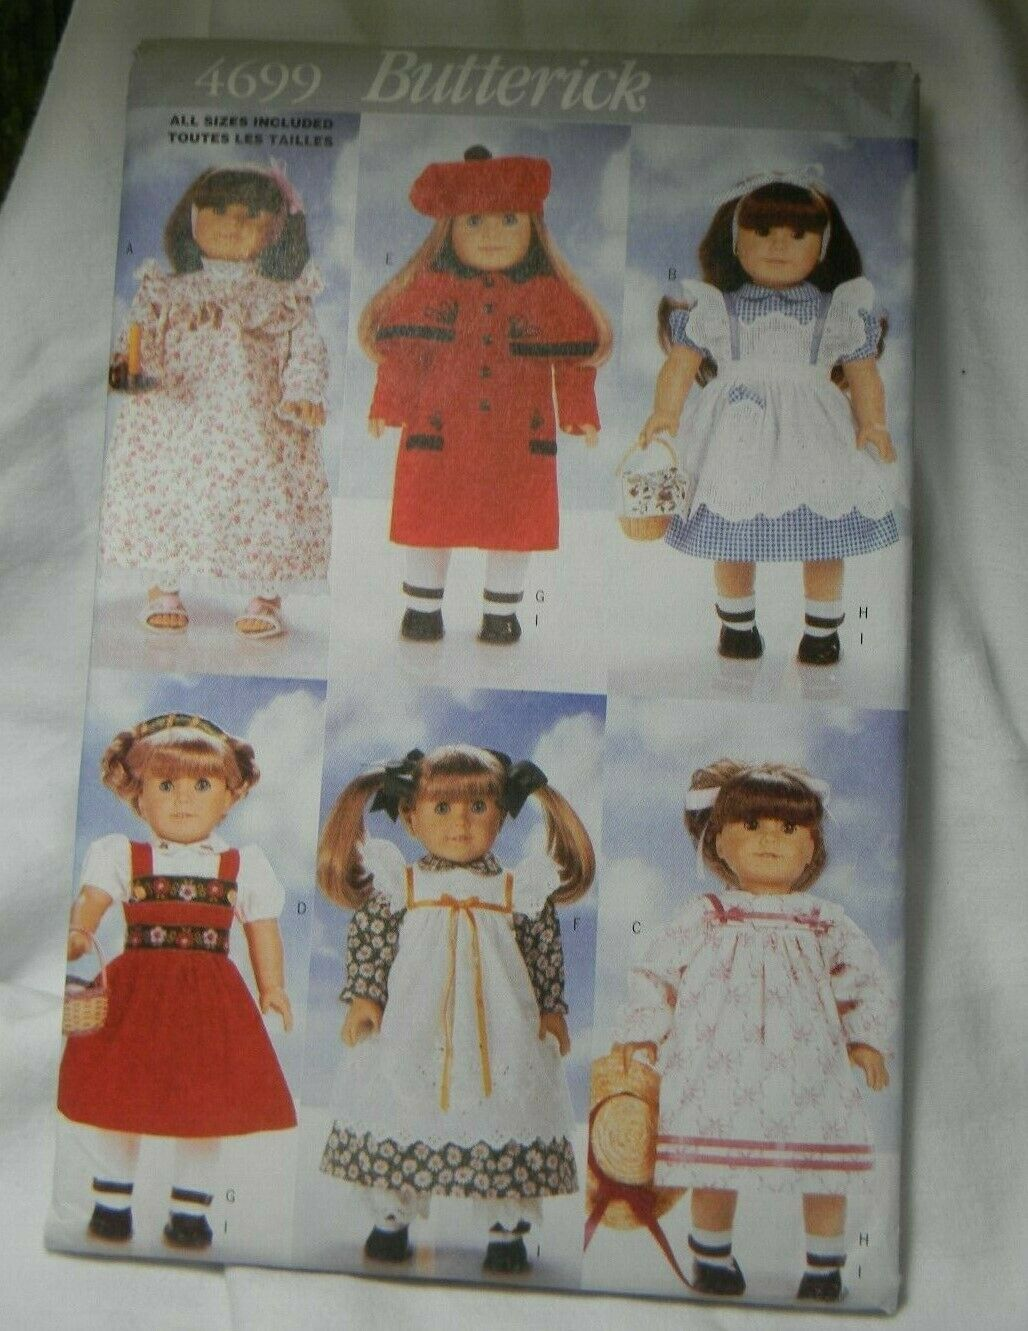 "BUTTERICK 4699 American Girl 18"" doll clothes sewing pattern"